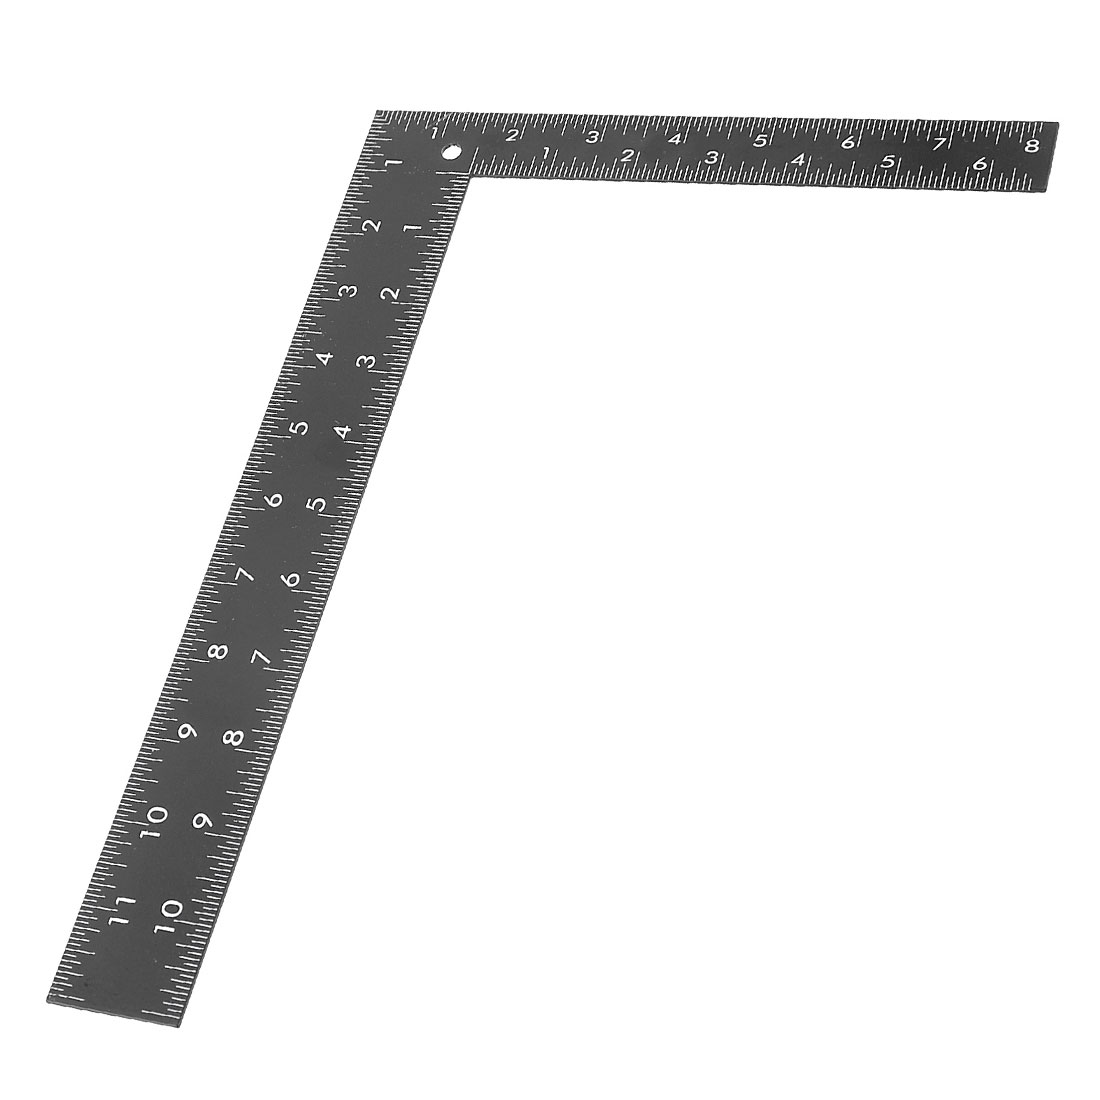 Woodwork Double Side 90 Degree Angle 0-30cm 0-20cm Scale Square Ruler